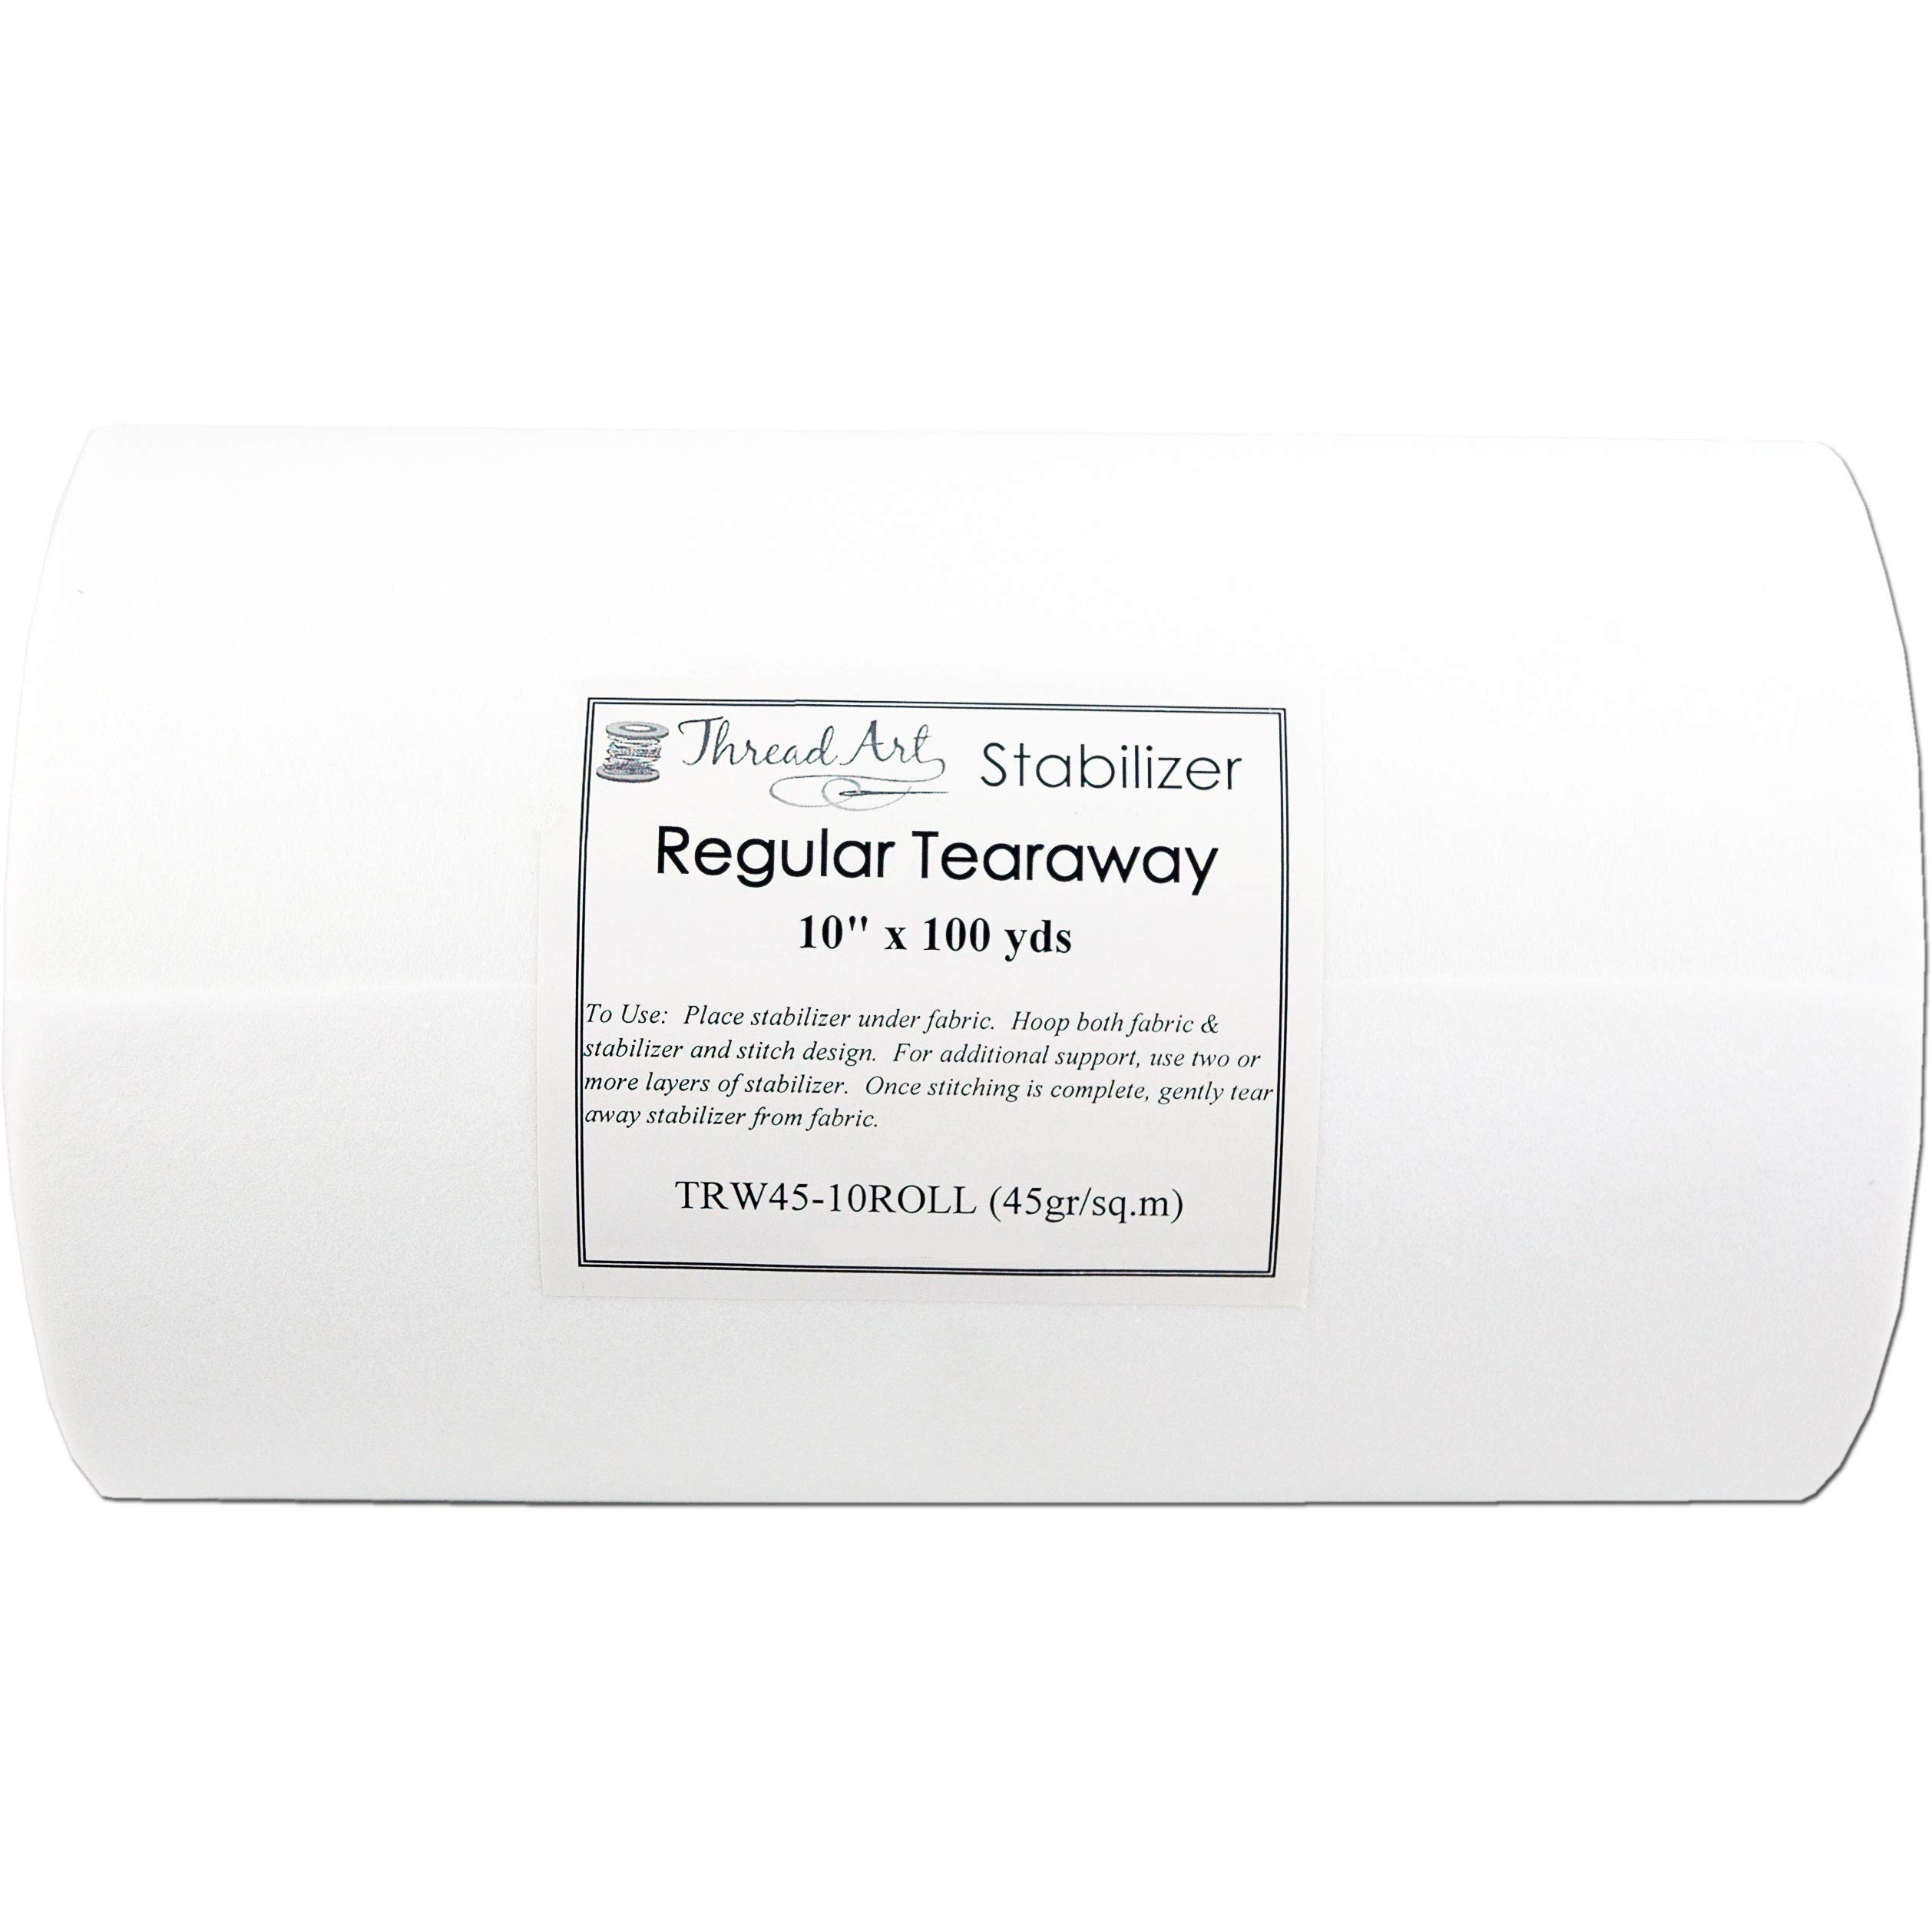 Threadart Tearaway Embroidery Stabilizer   1.6 oz Medium Weight   10'' x 100 yd roll   For Machine Embroidery   Also Available Over 20 Additional Styles of Cutaway, Washaway, Tearaway, Sticky in Rolls and Precut Sheets by Threadart